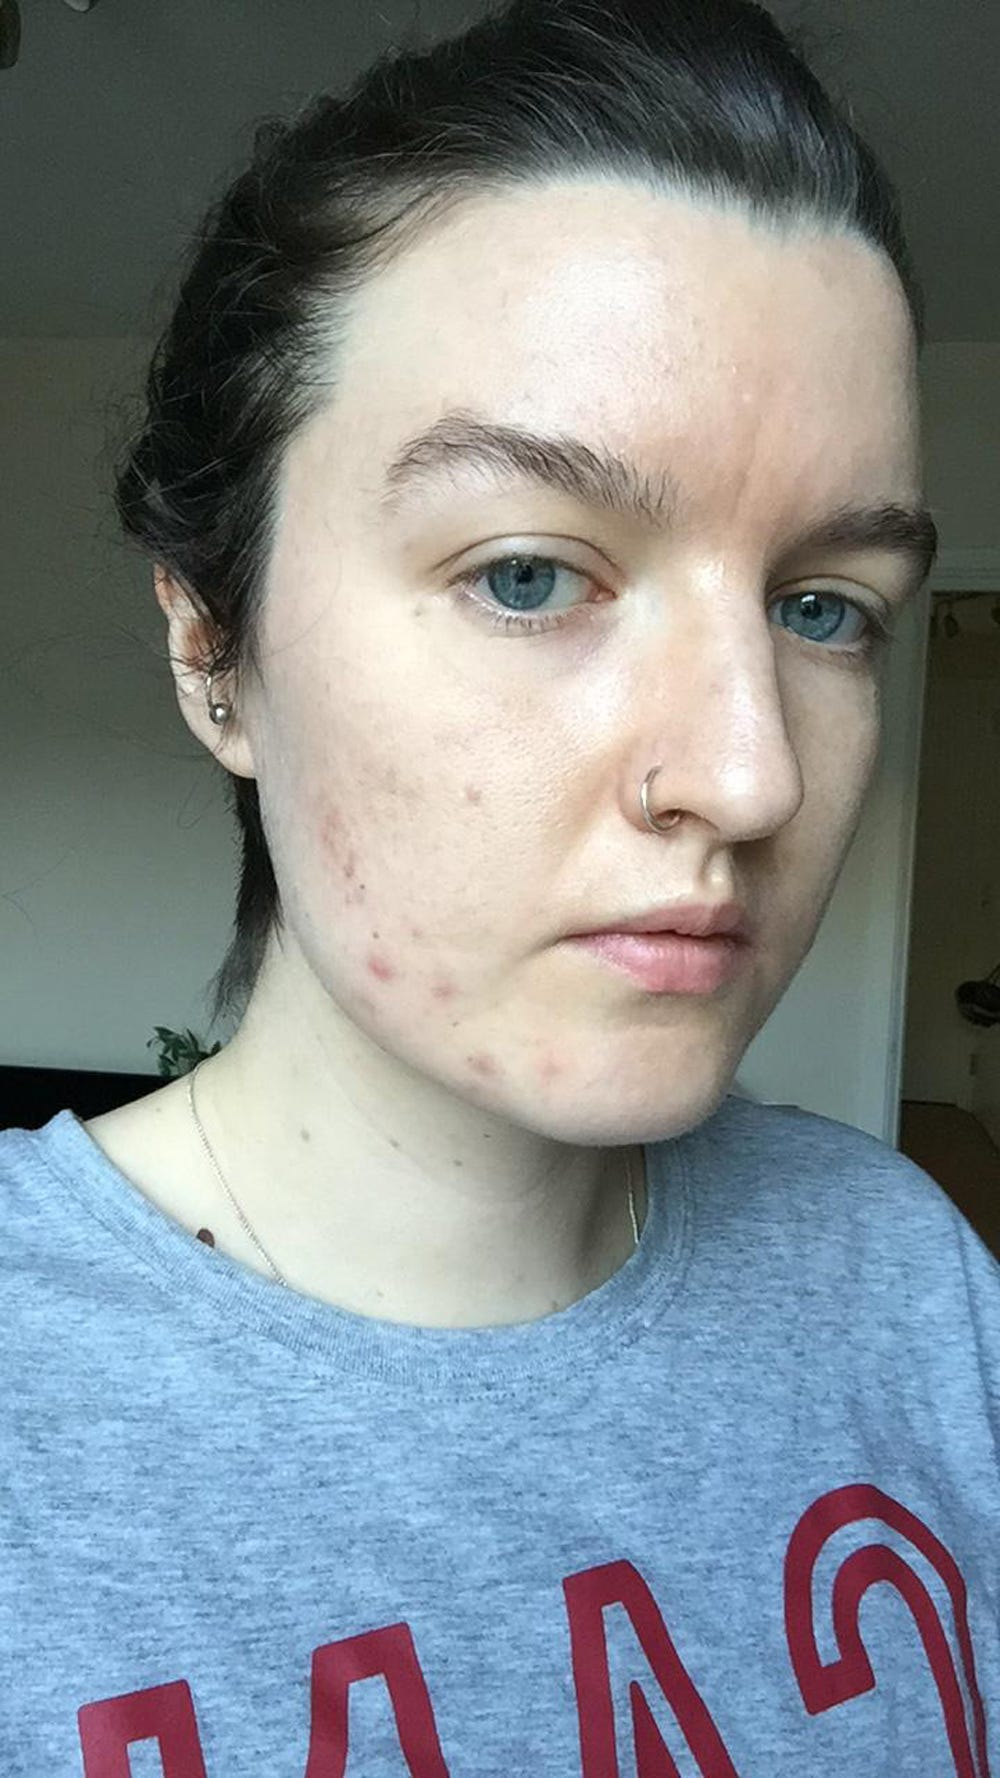 LED Light For Acne: Does It Work? Results, Side Effects